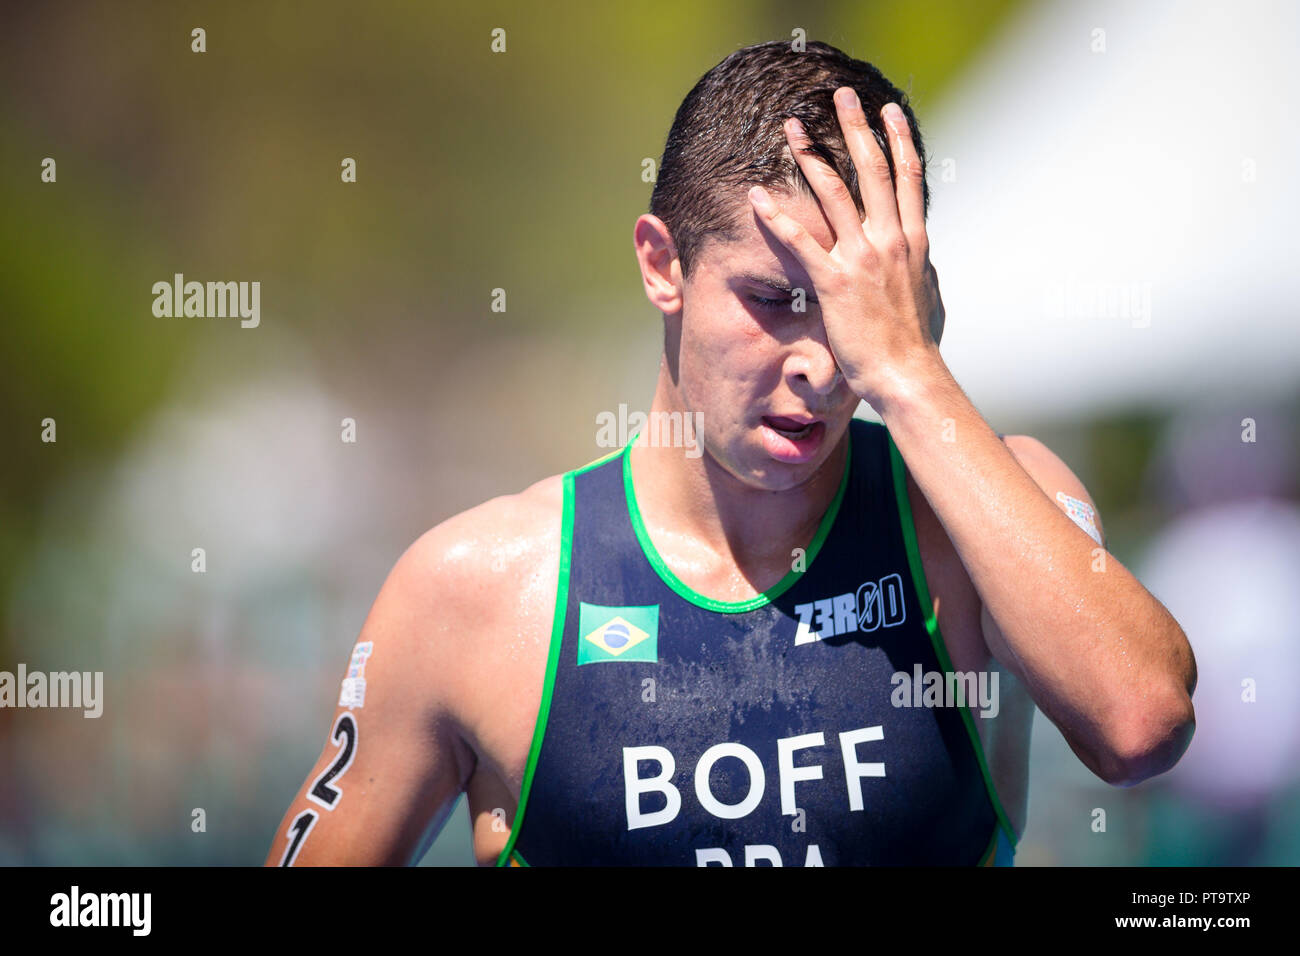 Buenos Aires, Argentina. 08th Oct, 2018. Pedro Henrique Boff do Brasil arrives 20th in the triathlon race of the Buenos Aires 2018 Youth Olympic Games with a total time of 57:26, at the Parque Verde in Palermo, Buenos Aires, Argentina. Credit: Marcelo Machado de Melo/FotoArena/Alamy Live News Stock Photo